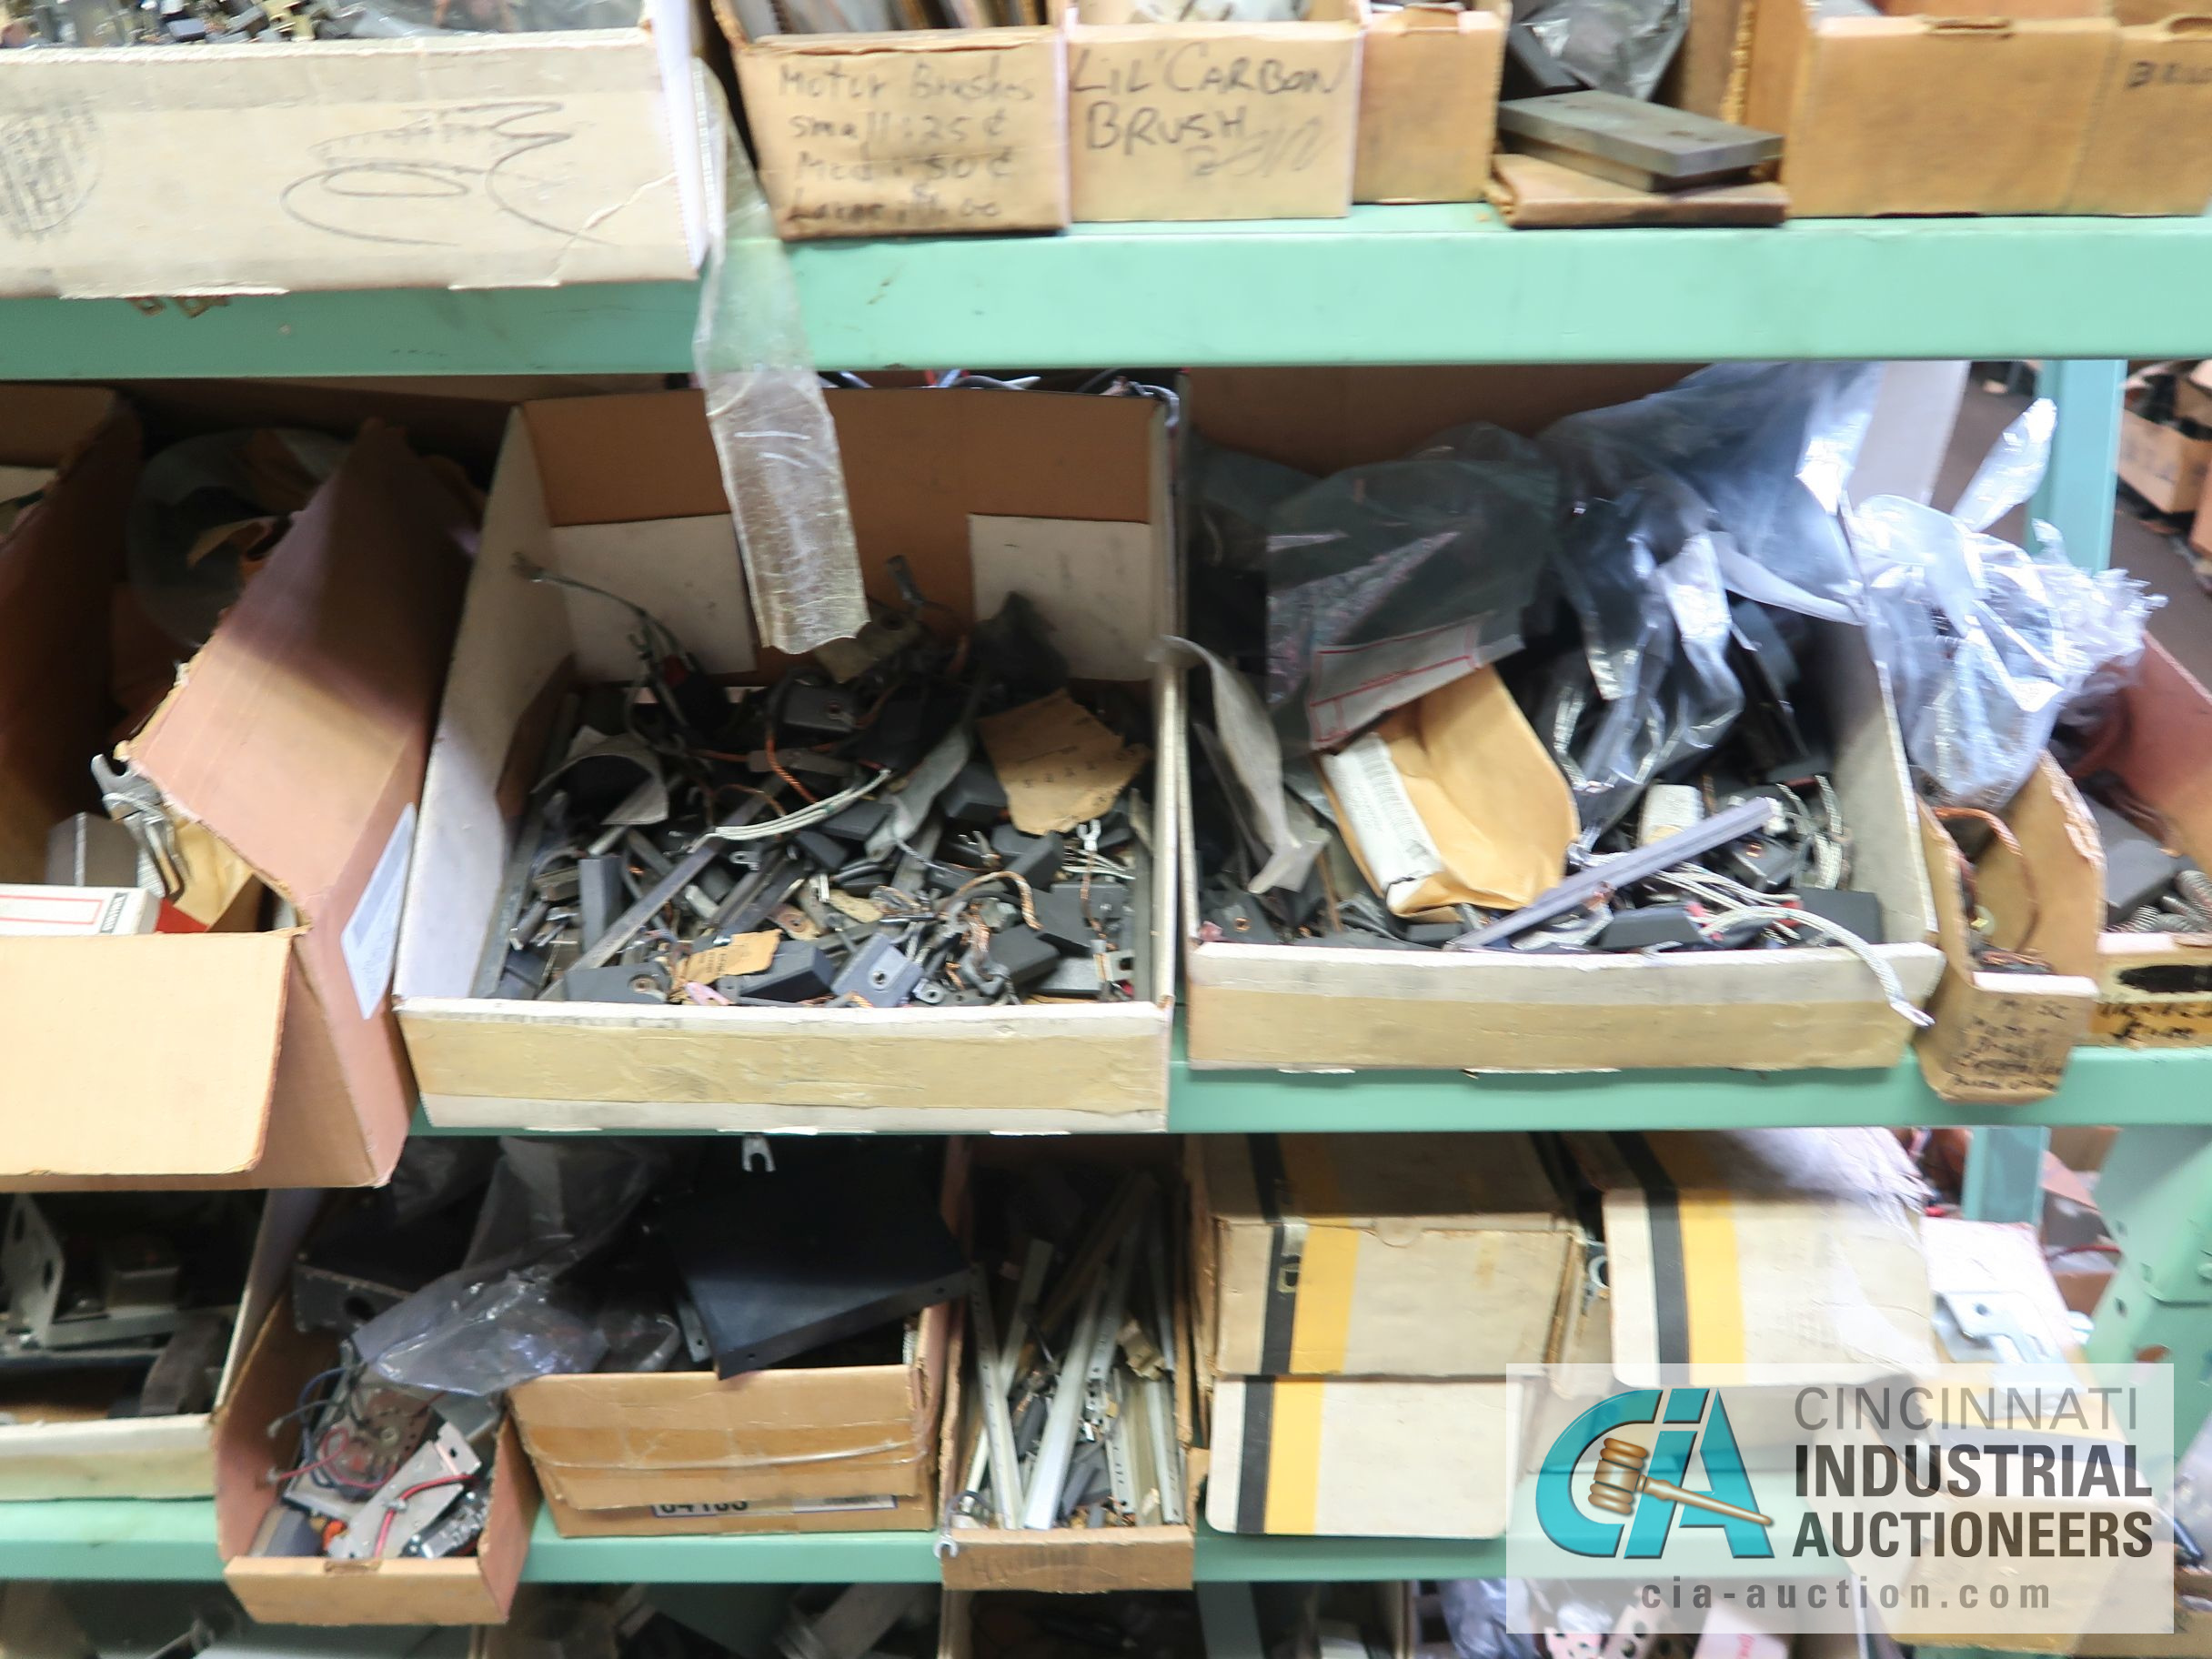 CONTENTS OF (6) RACKS INCLUDING MISCELLANEOUS AUTOMOTIVE PARTS, BREAKS, ROTORS, GASKETS, MOUNTING - Image 23 of 38